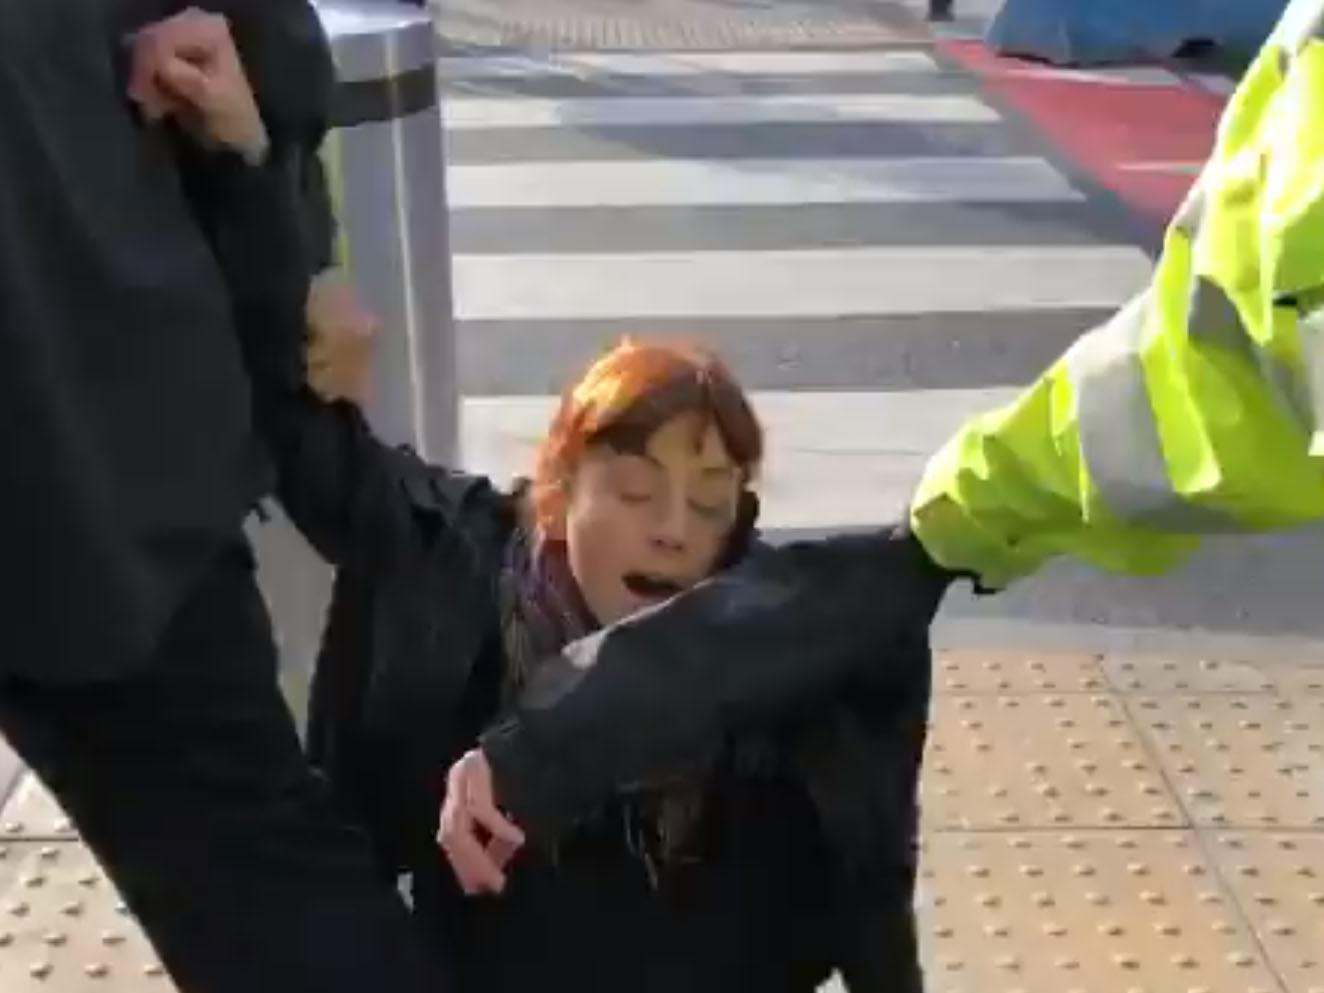 Extinction Rebellion protests - live: Police drag woman along ground as activist storms on to plane during 'Hong Kong-style' occupation of airport